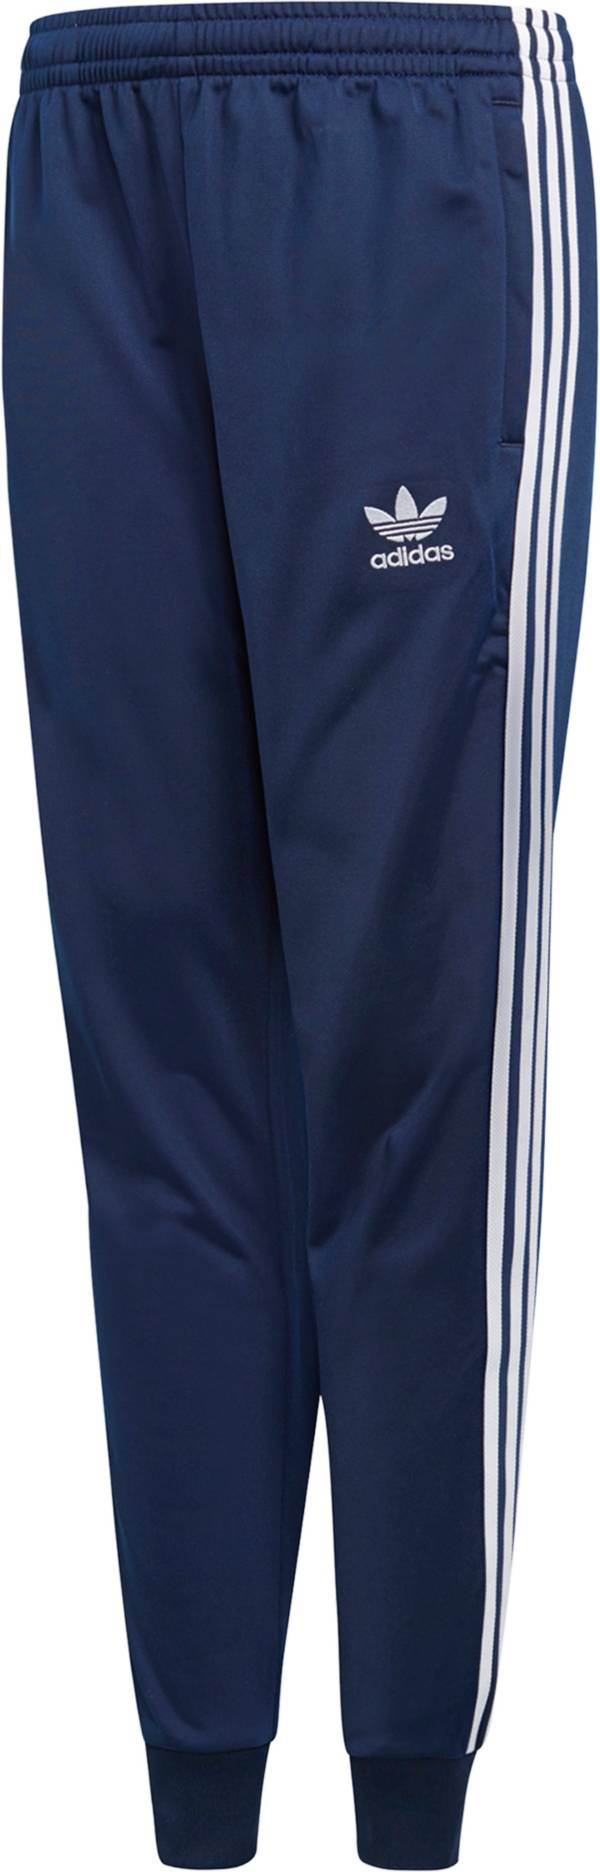 adidas Originals Boys' Superstar Track Pants product image